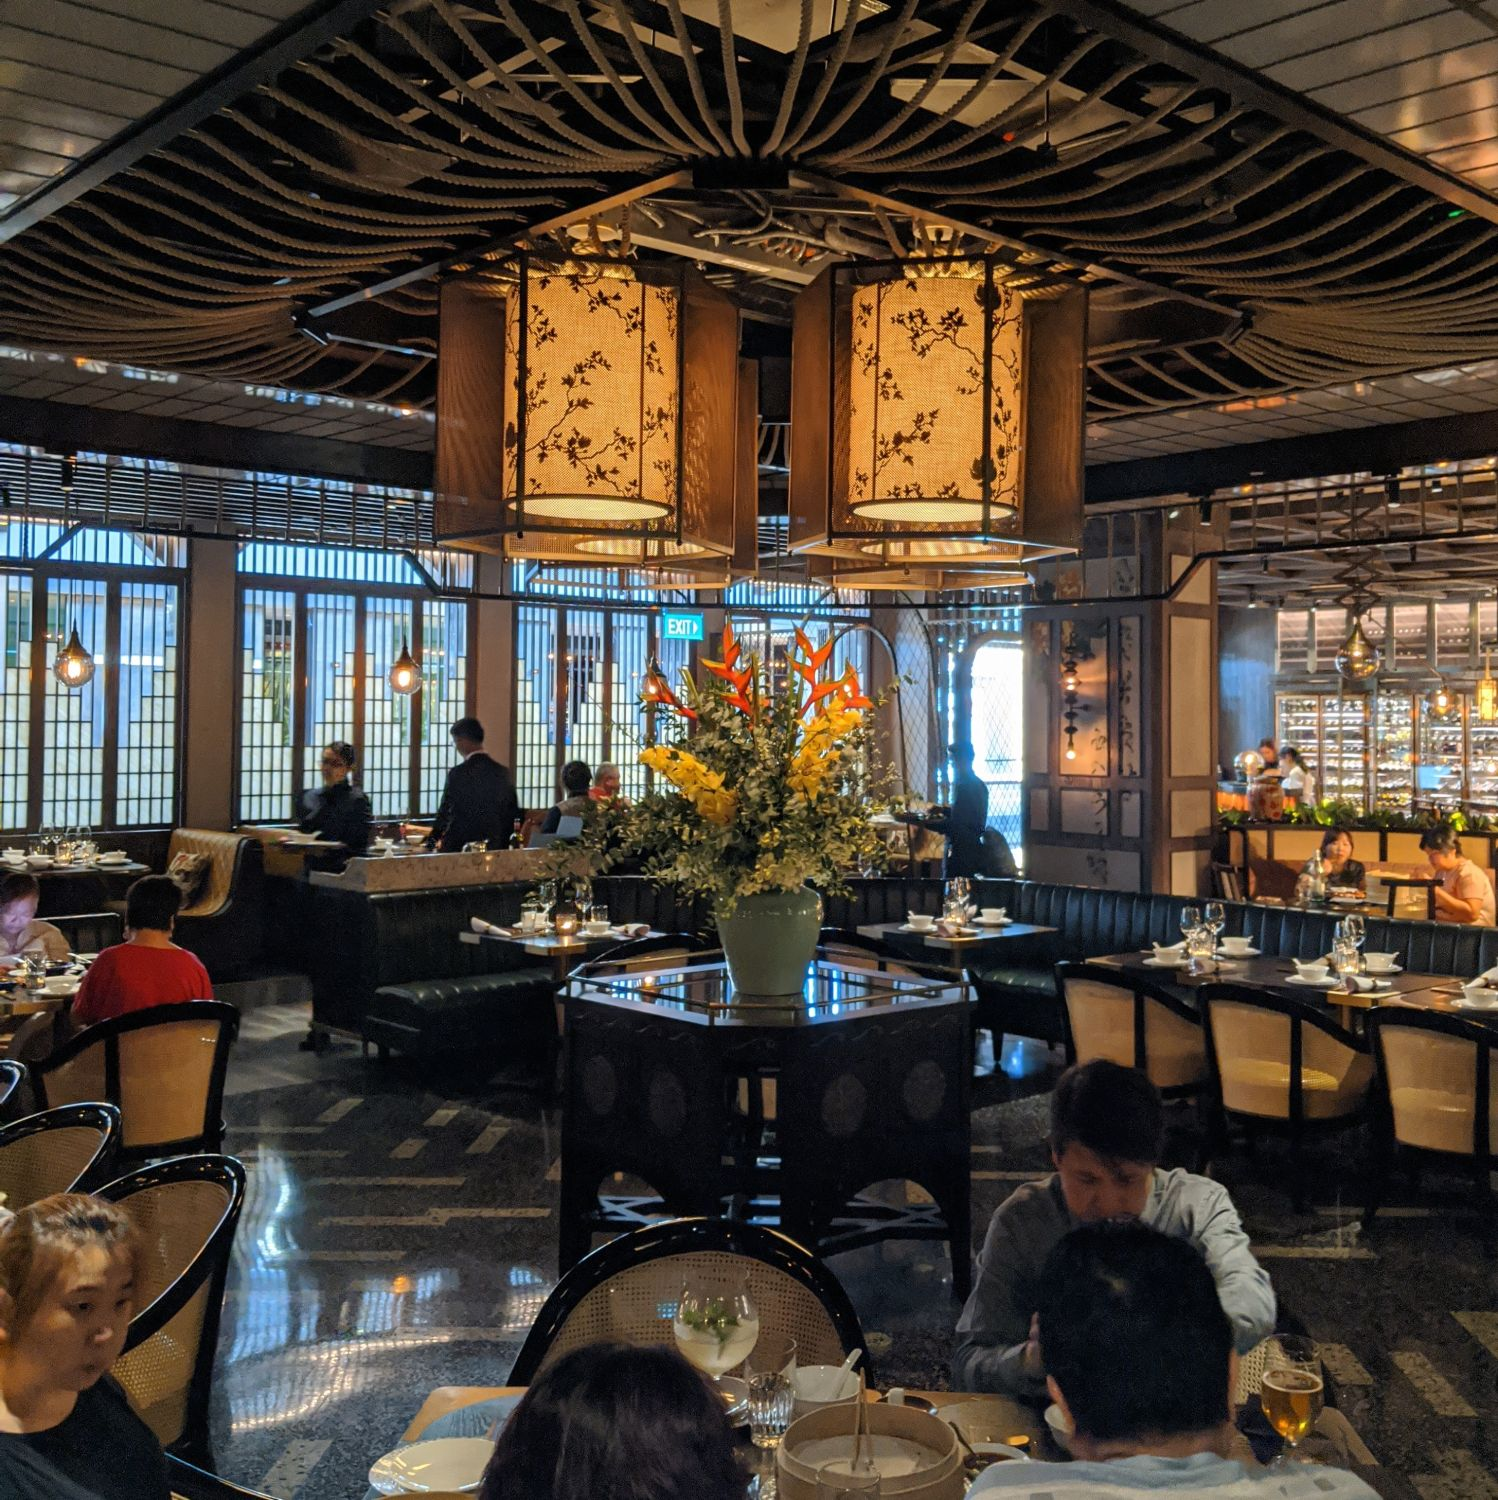 mott 32 singapore main dining area